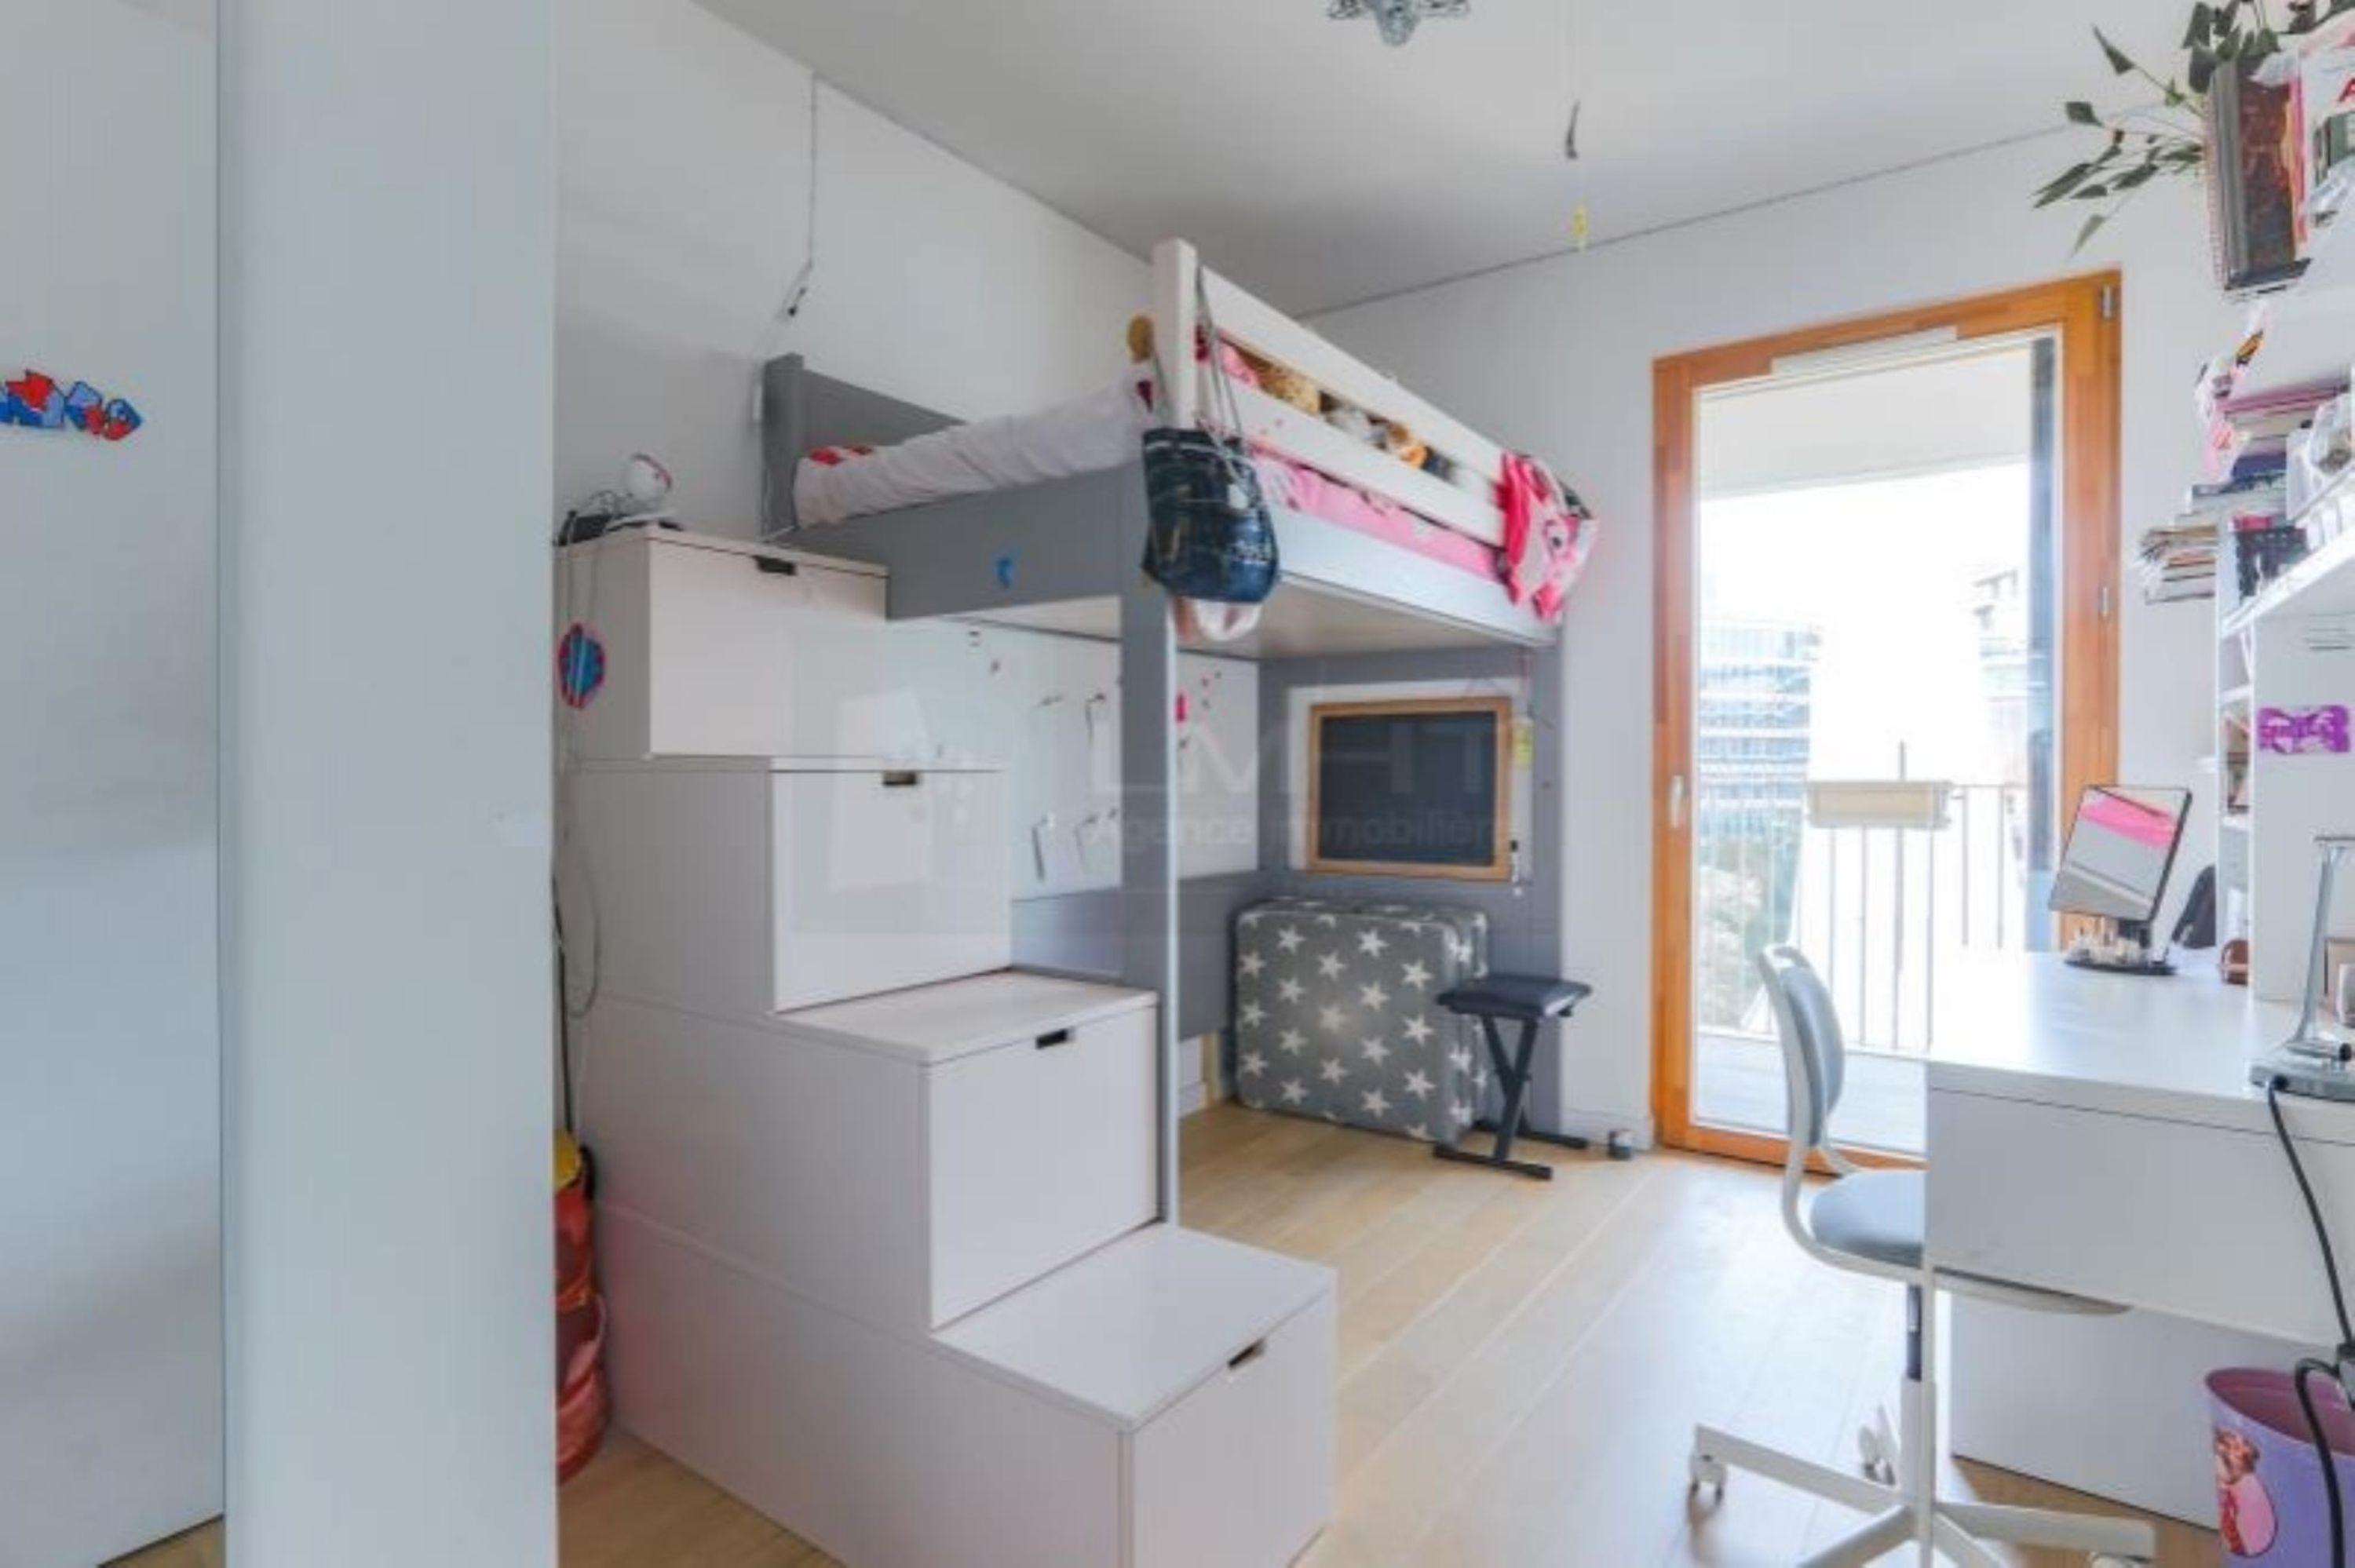 agence immobilière sevres 92 le chesnay 78 achat vente location appartement maison immobilier LMHT ANF IGGKOKRV